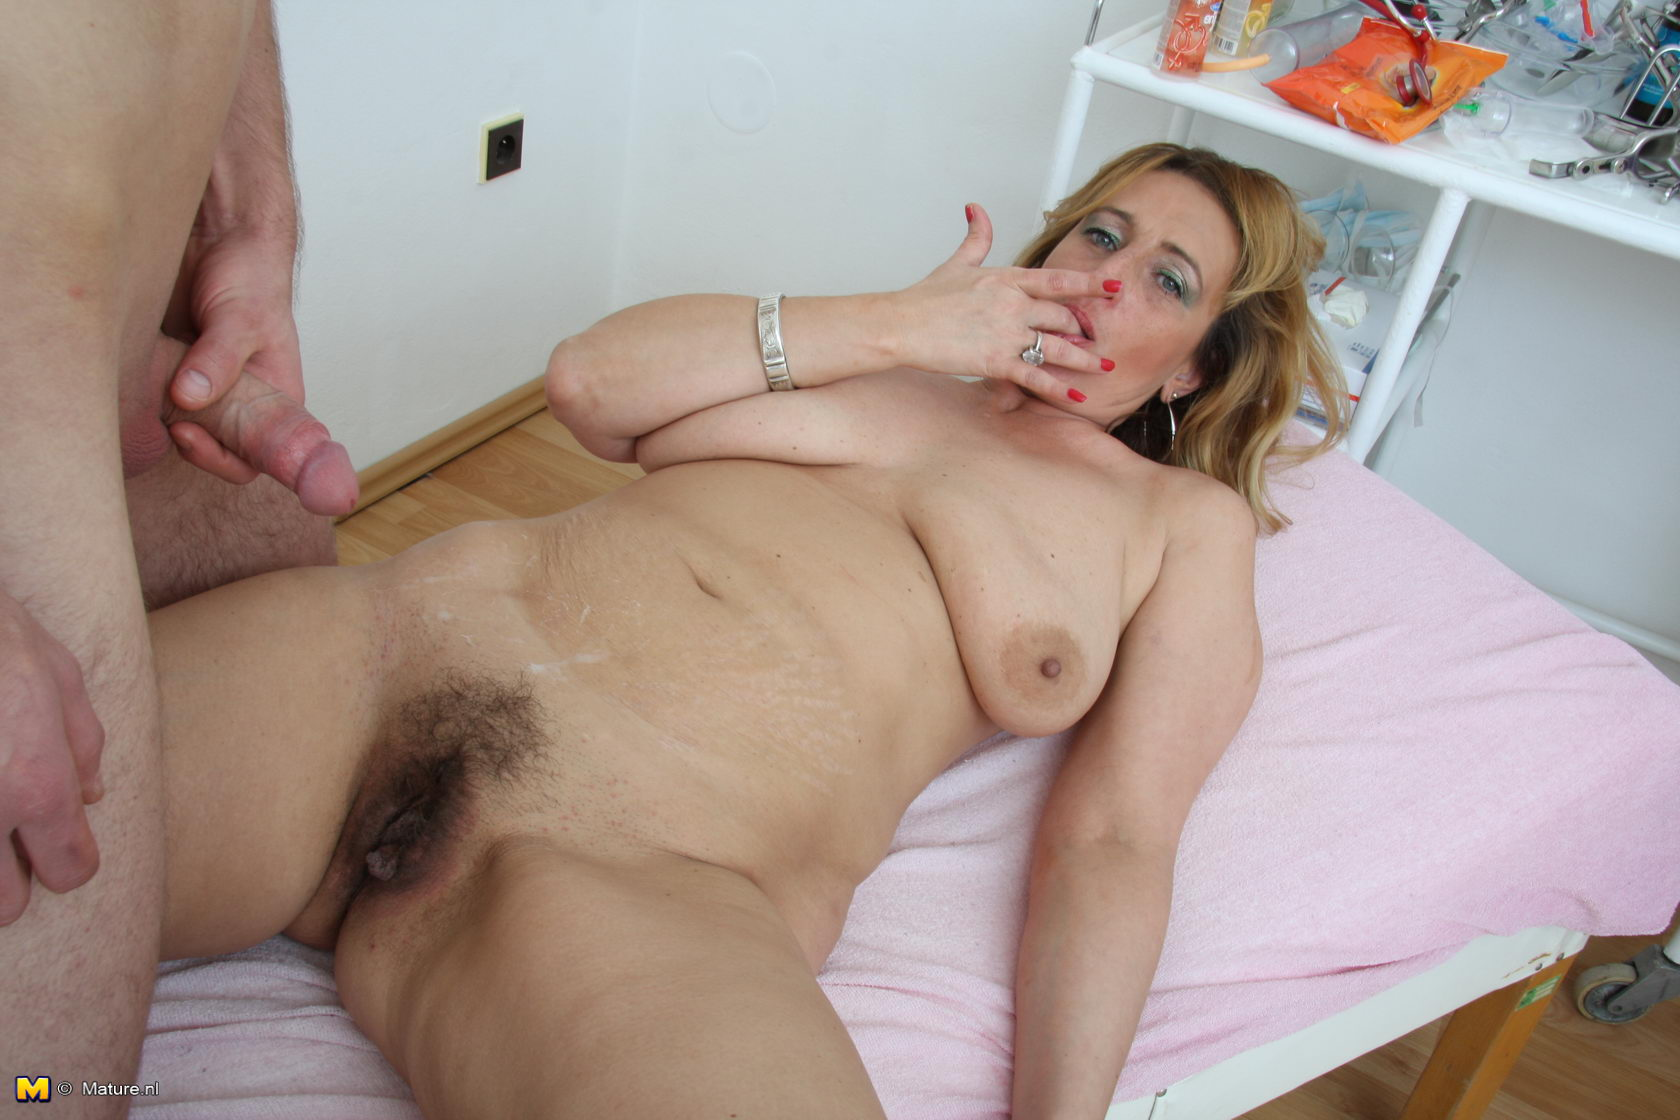 Free mature sex porn videos